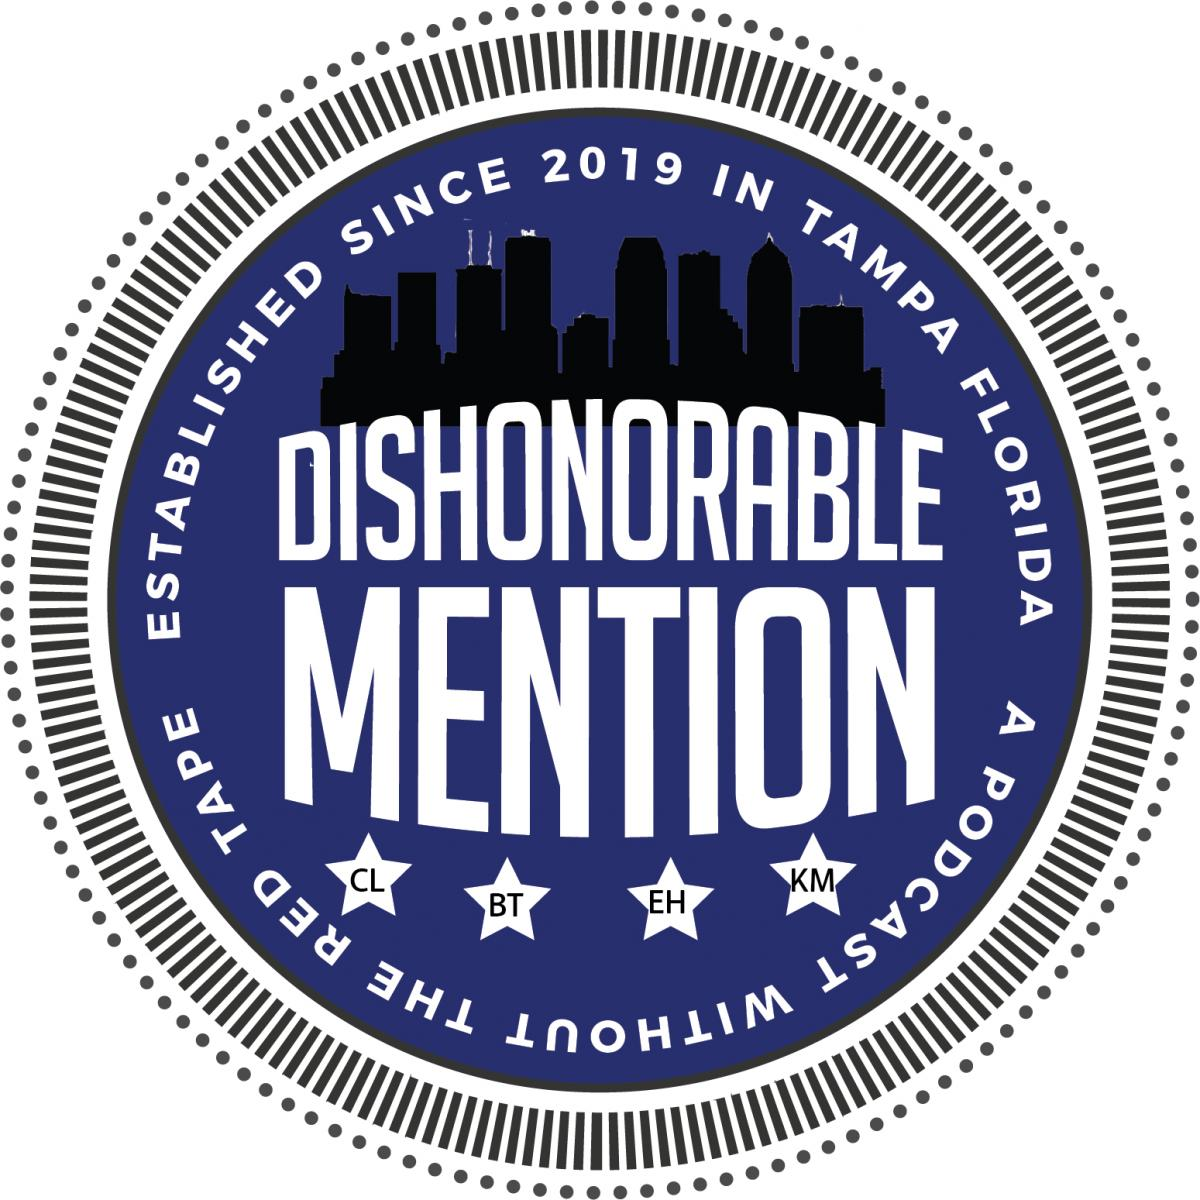 Dishonorable Mention Episode 24: DM at the Library featuring Katie Blaxberg